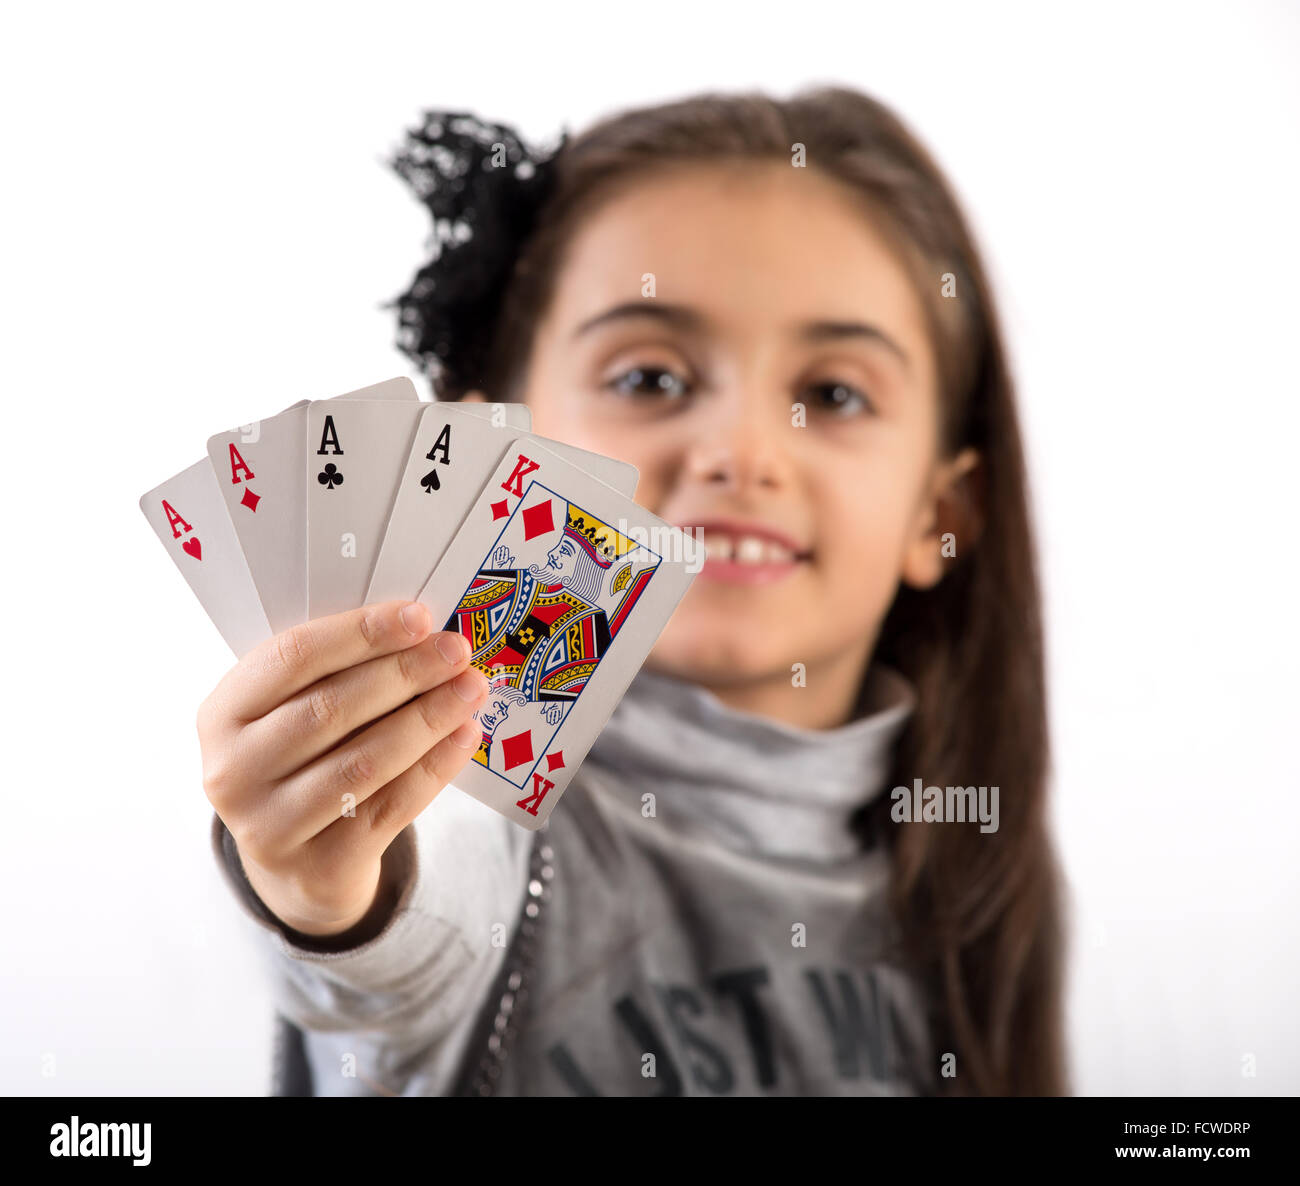 Proud little girl showing a winning poker hand of four aces and a king to the camera - Stock Image